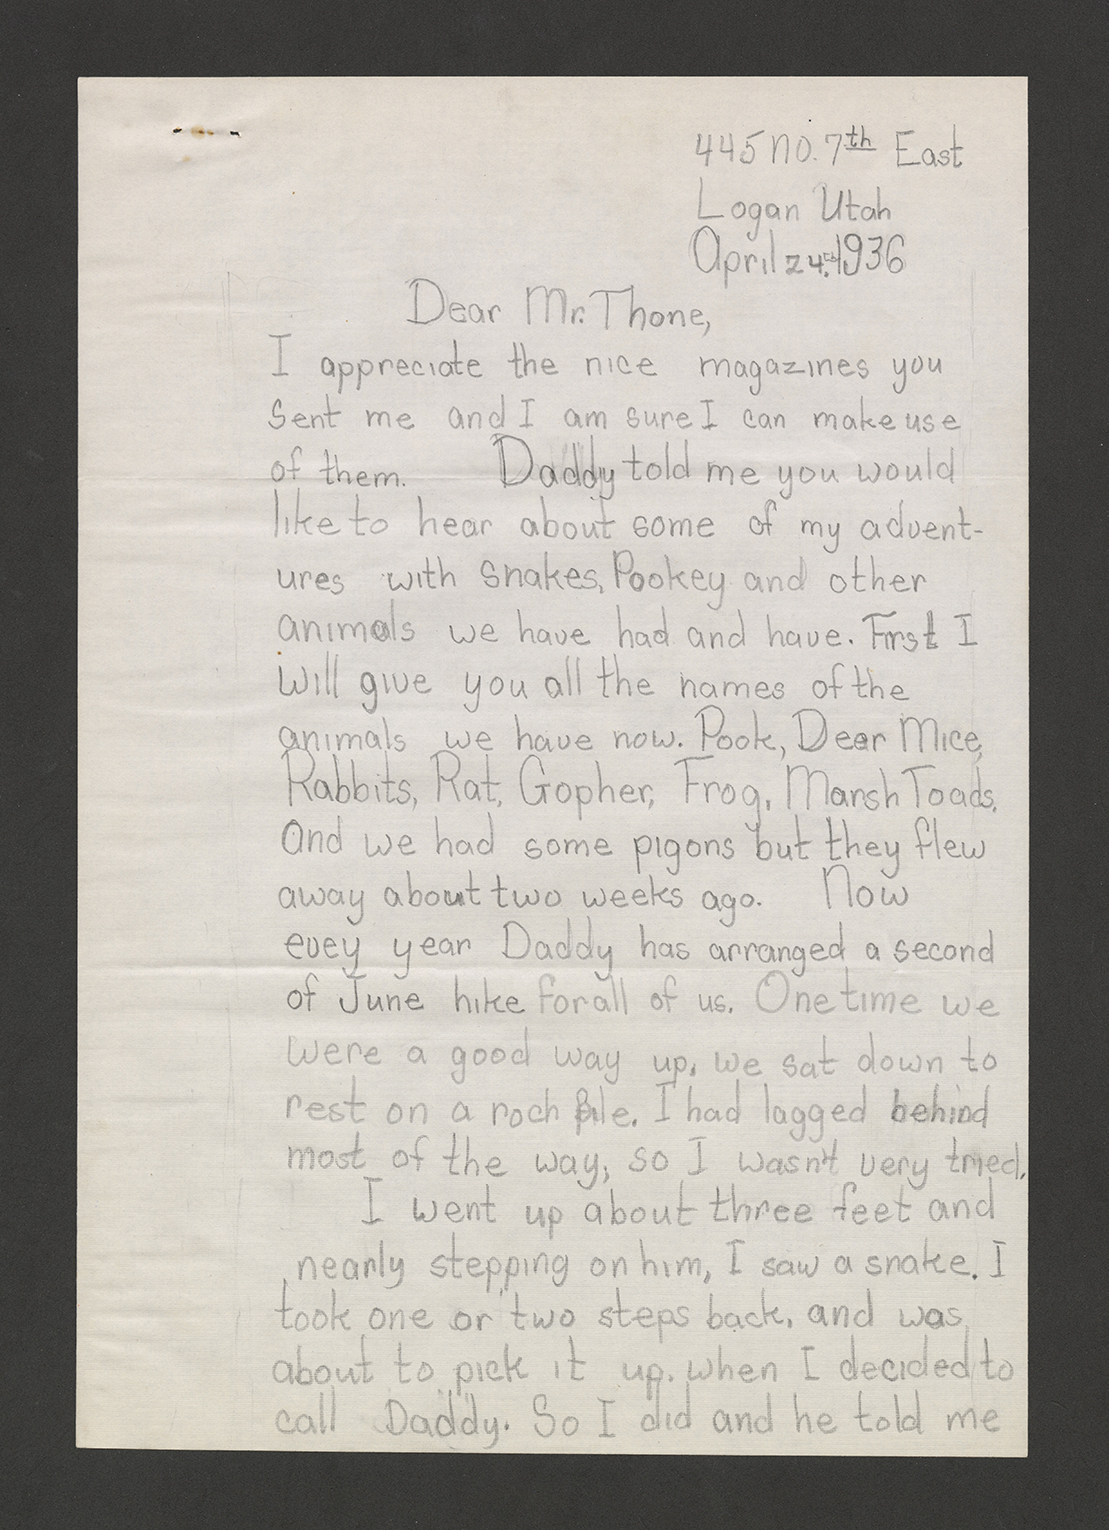 Handwritten letter from Elaine Stanford to Frank Thone about Stanford's pet porcupine.